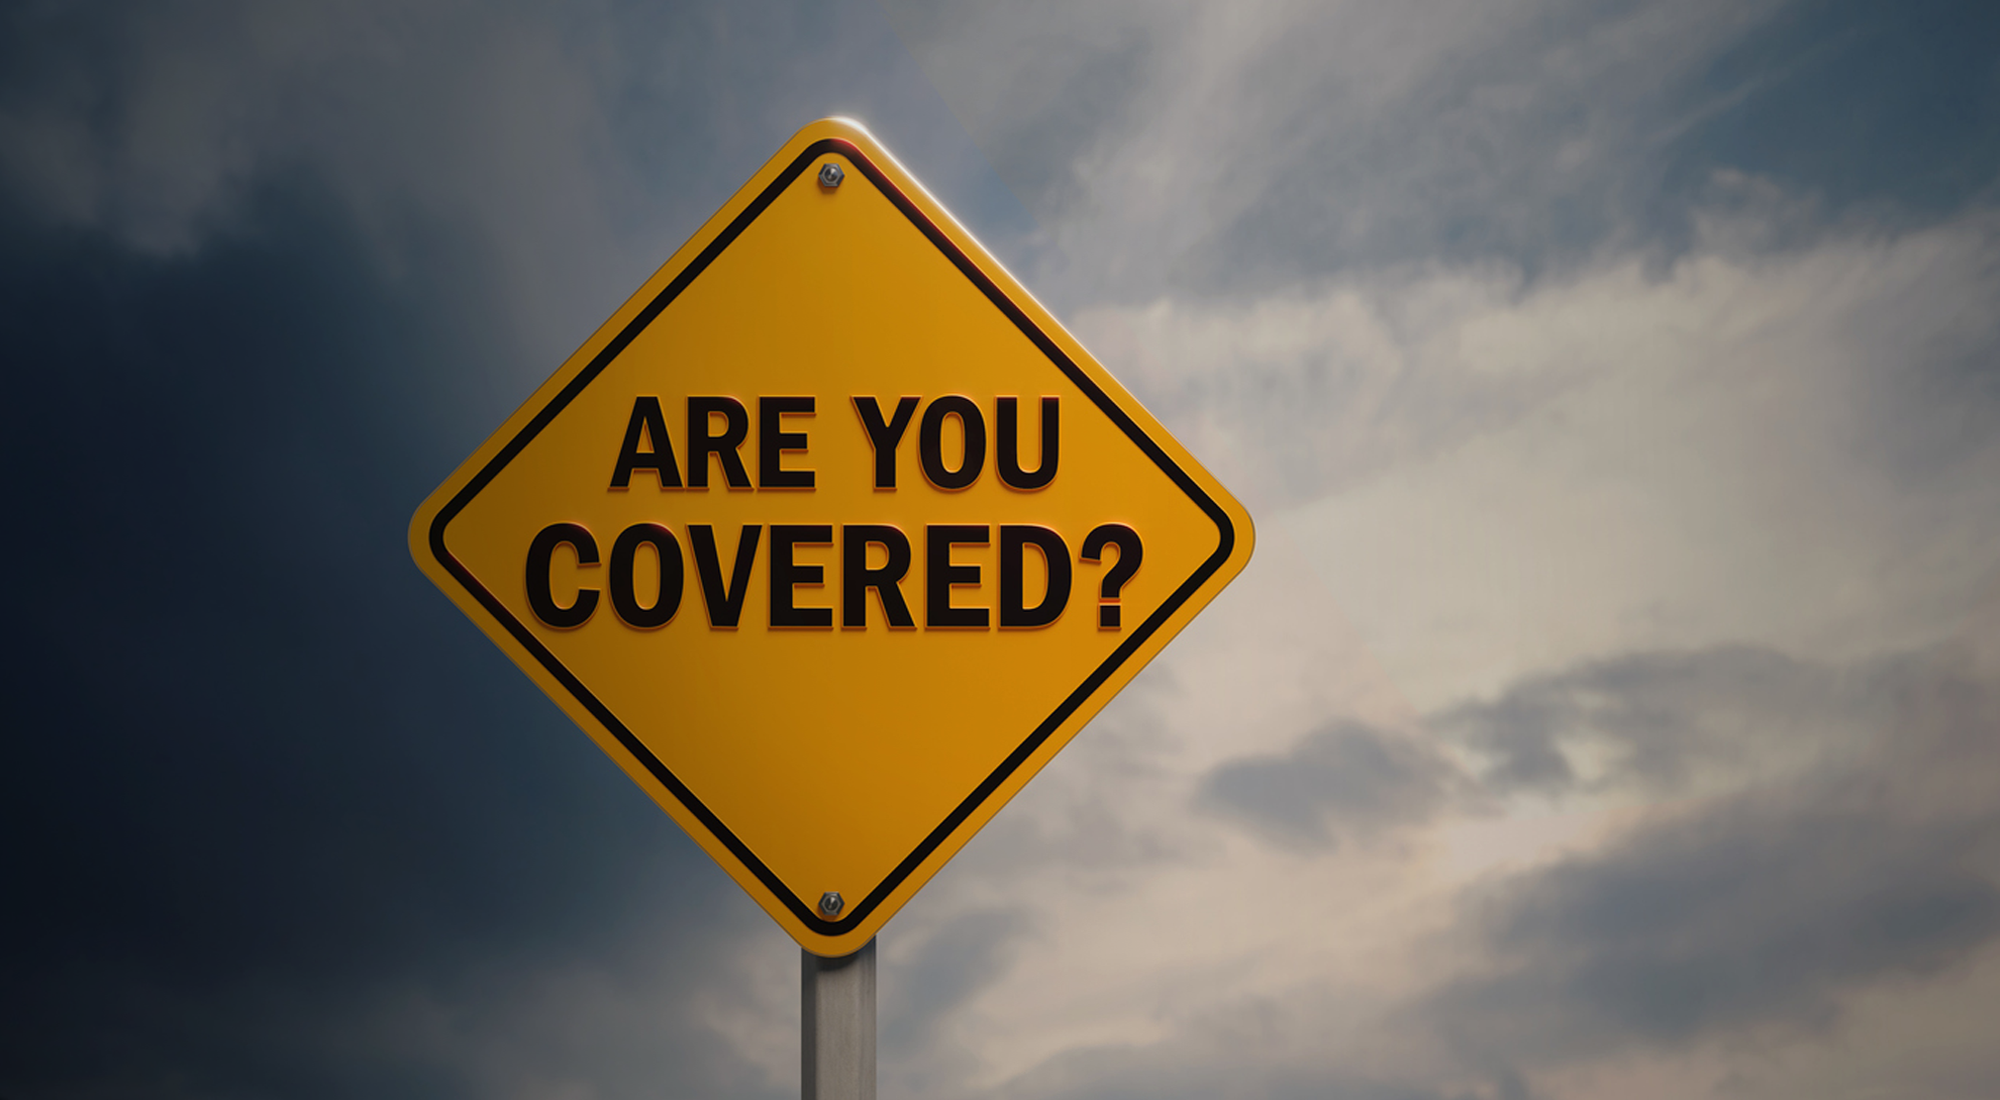 NCCI coverage verification tool for subcontractors